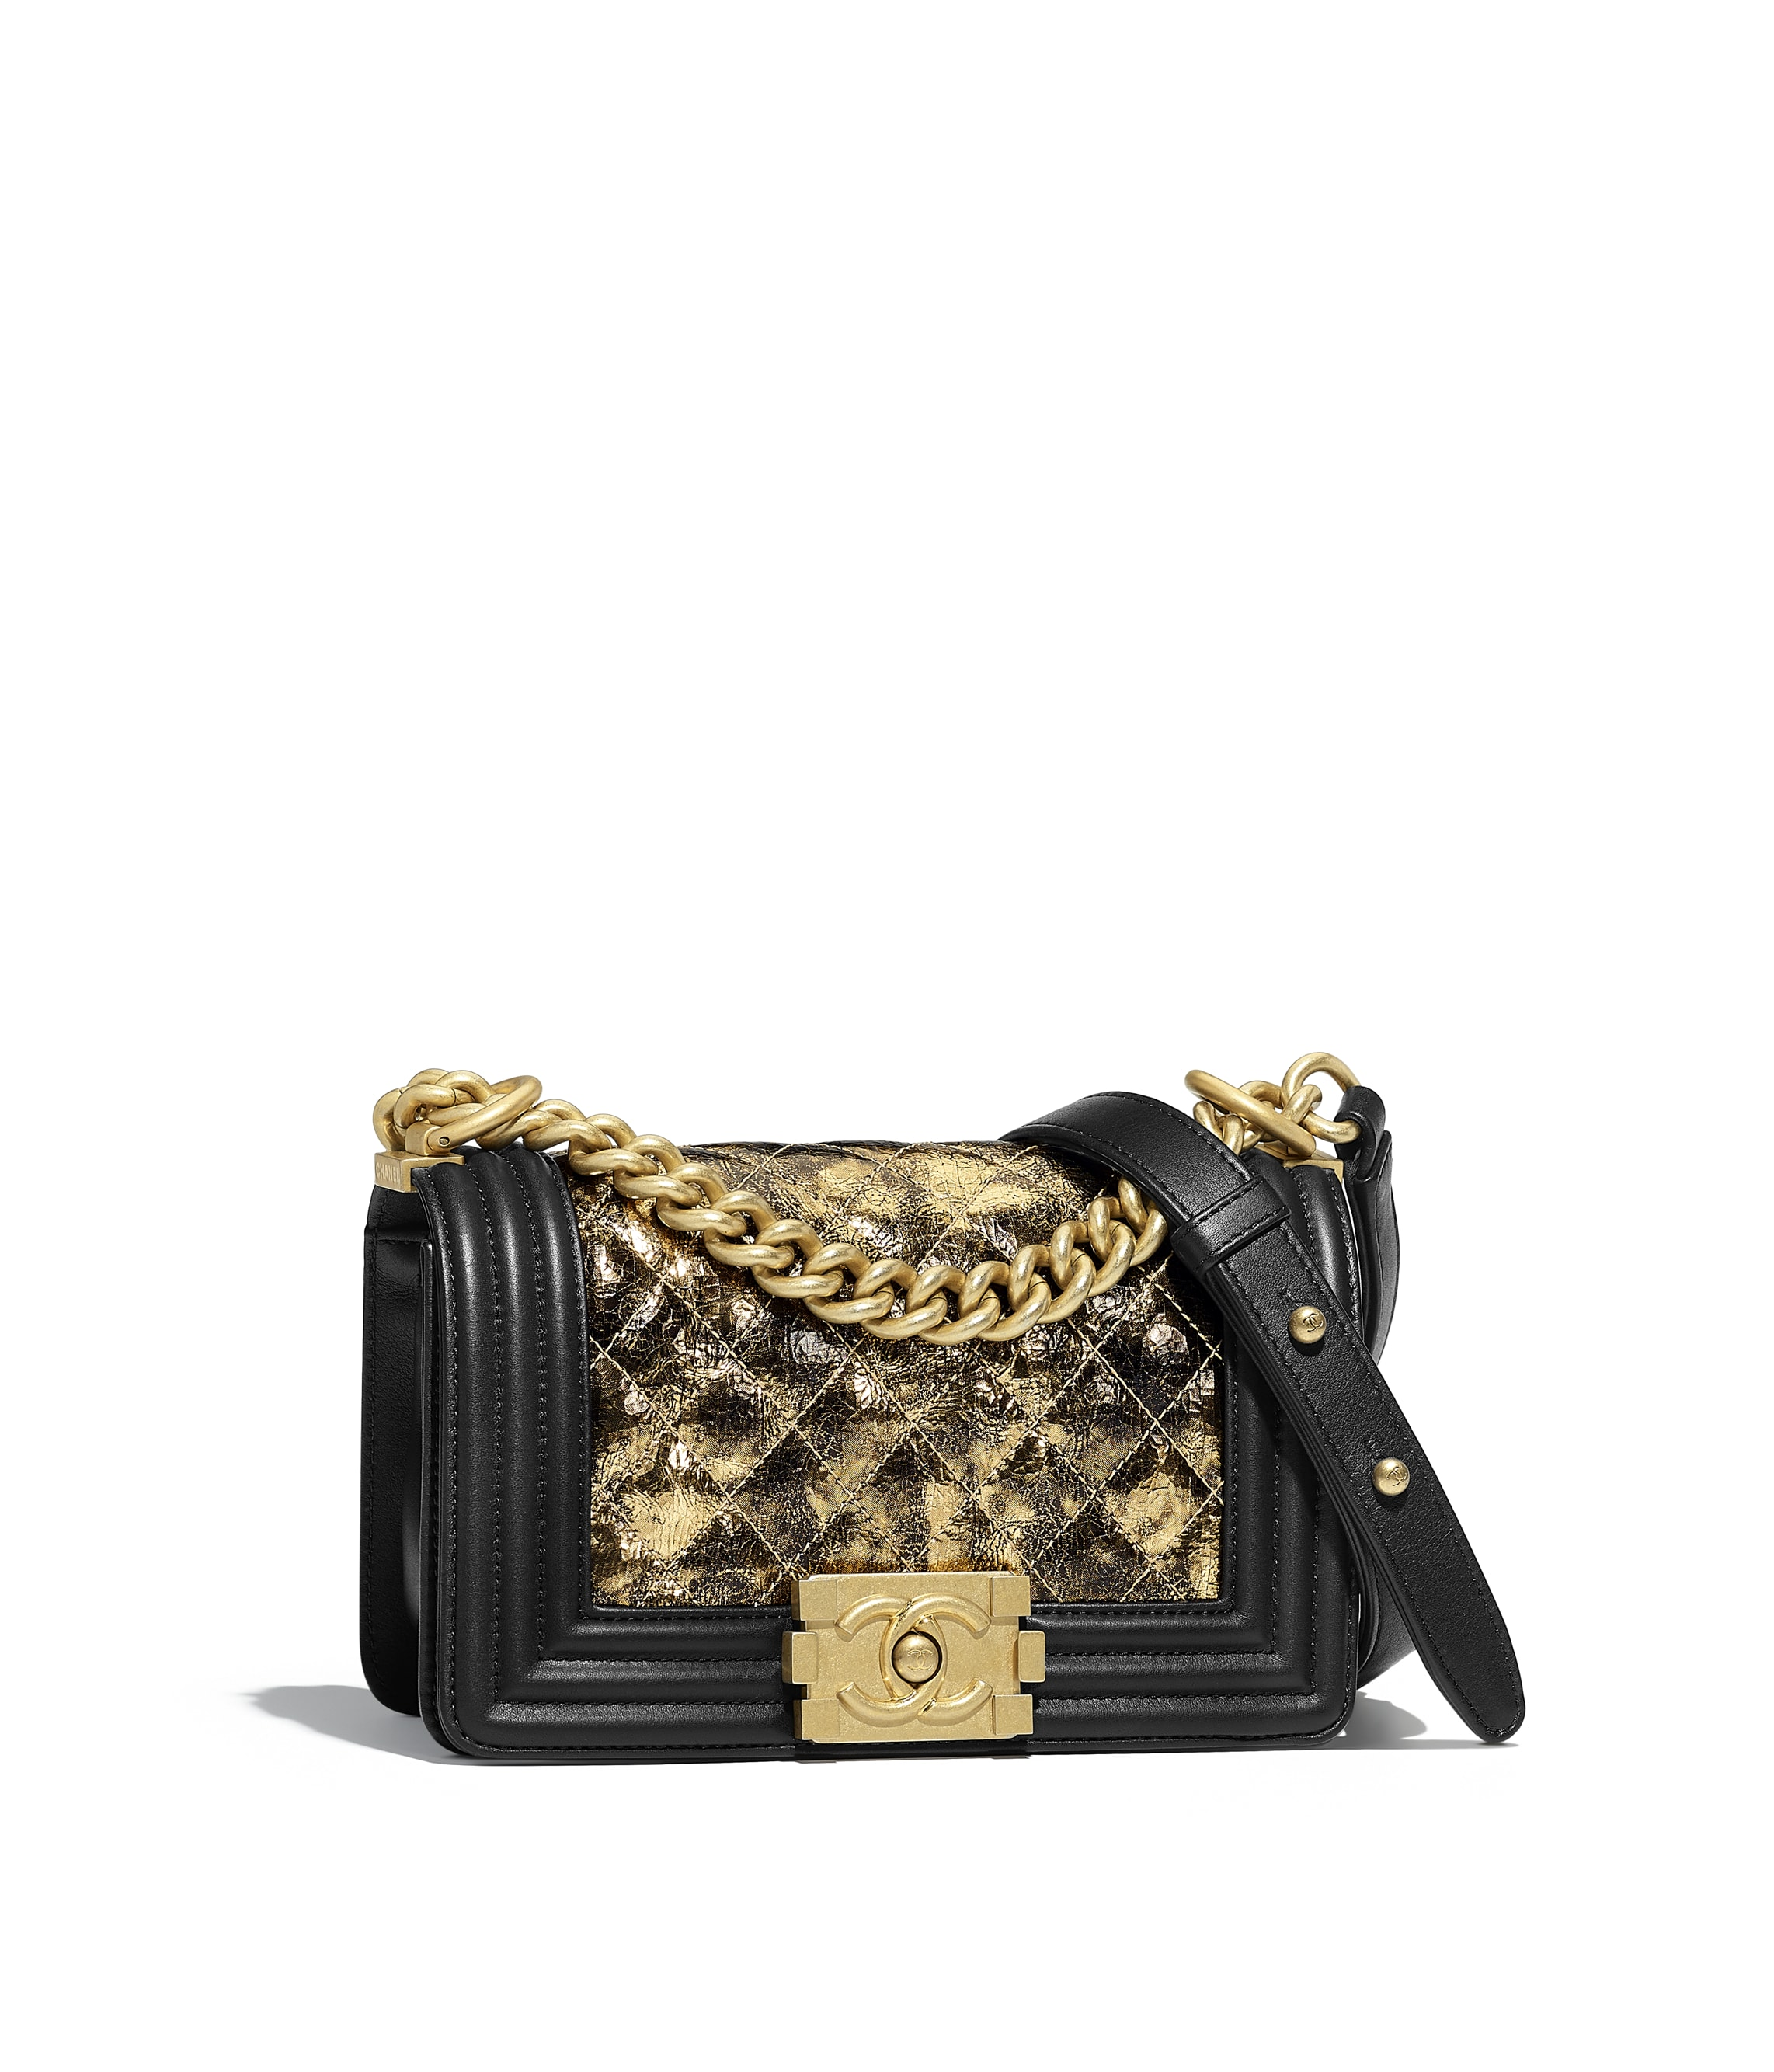 6980f643c6fb Chanel Handbags Boy | Stanford Center for Opportunity Policy in ...